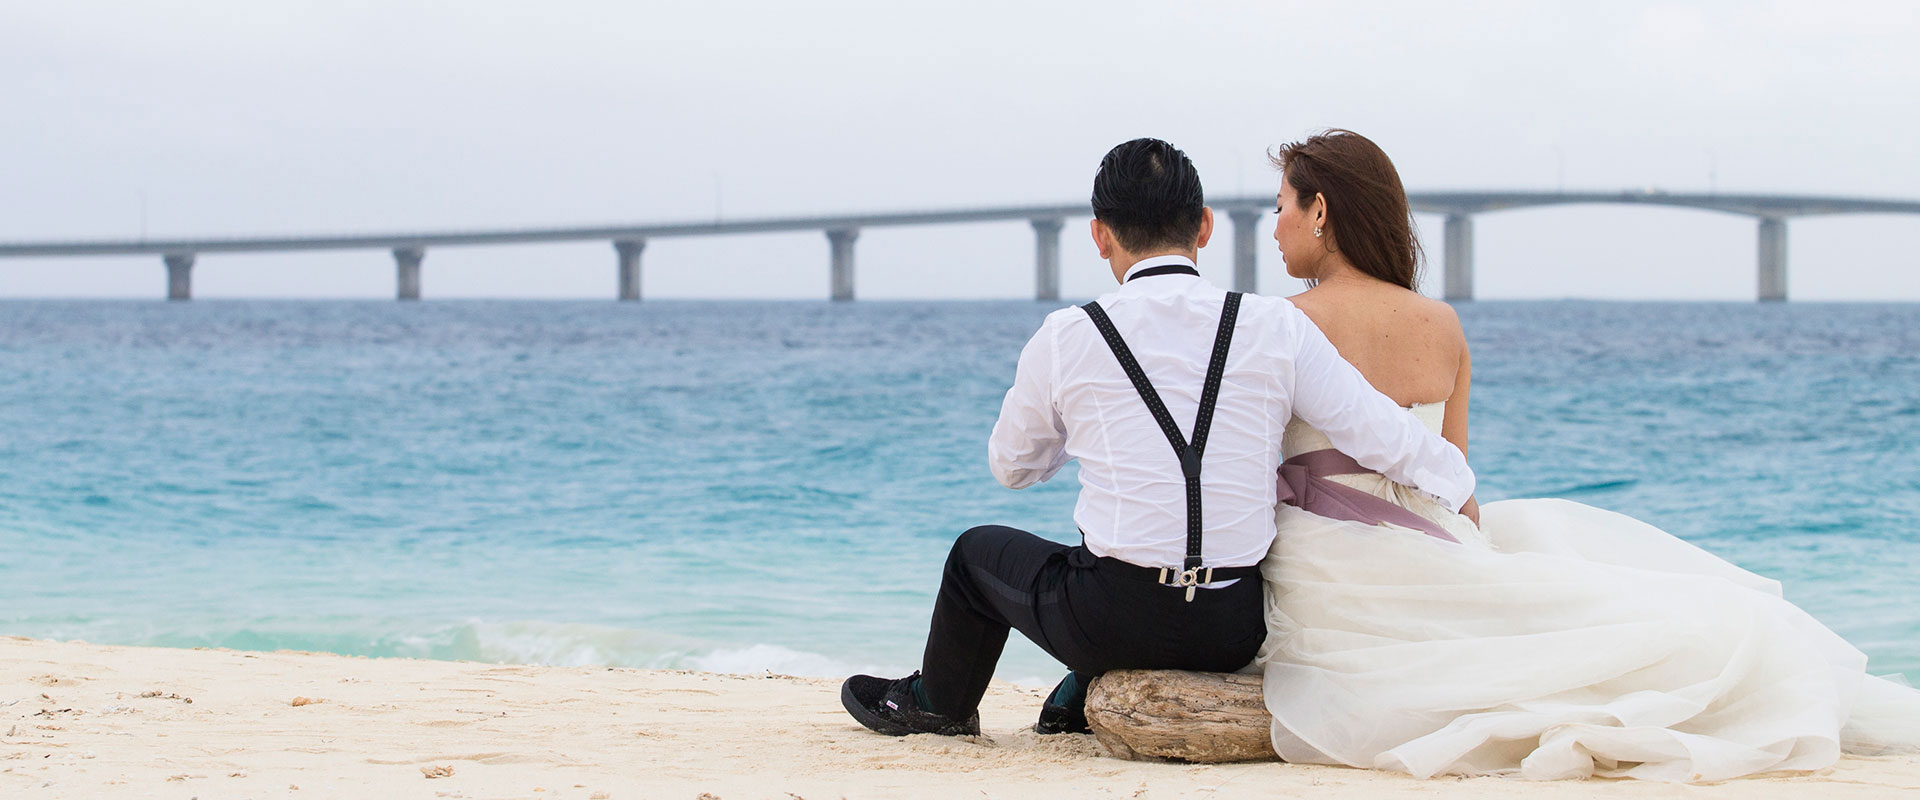 Resort Wedding - 宮古島 -